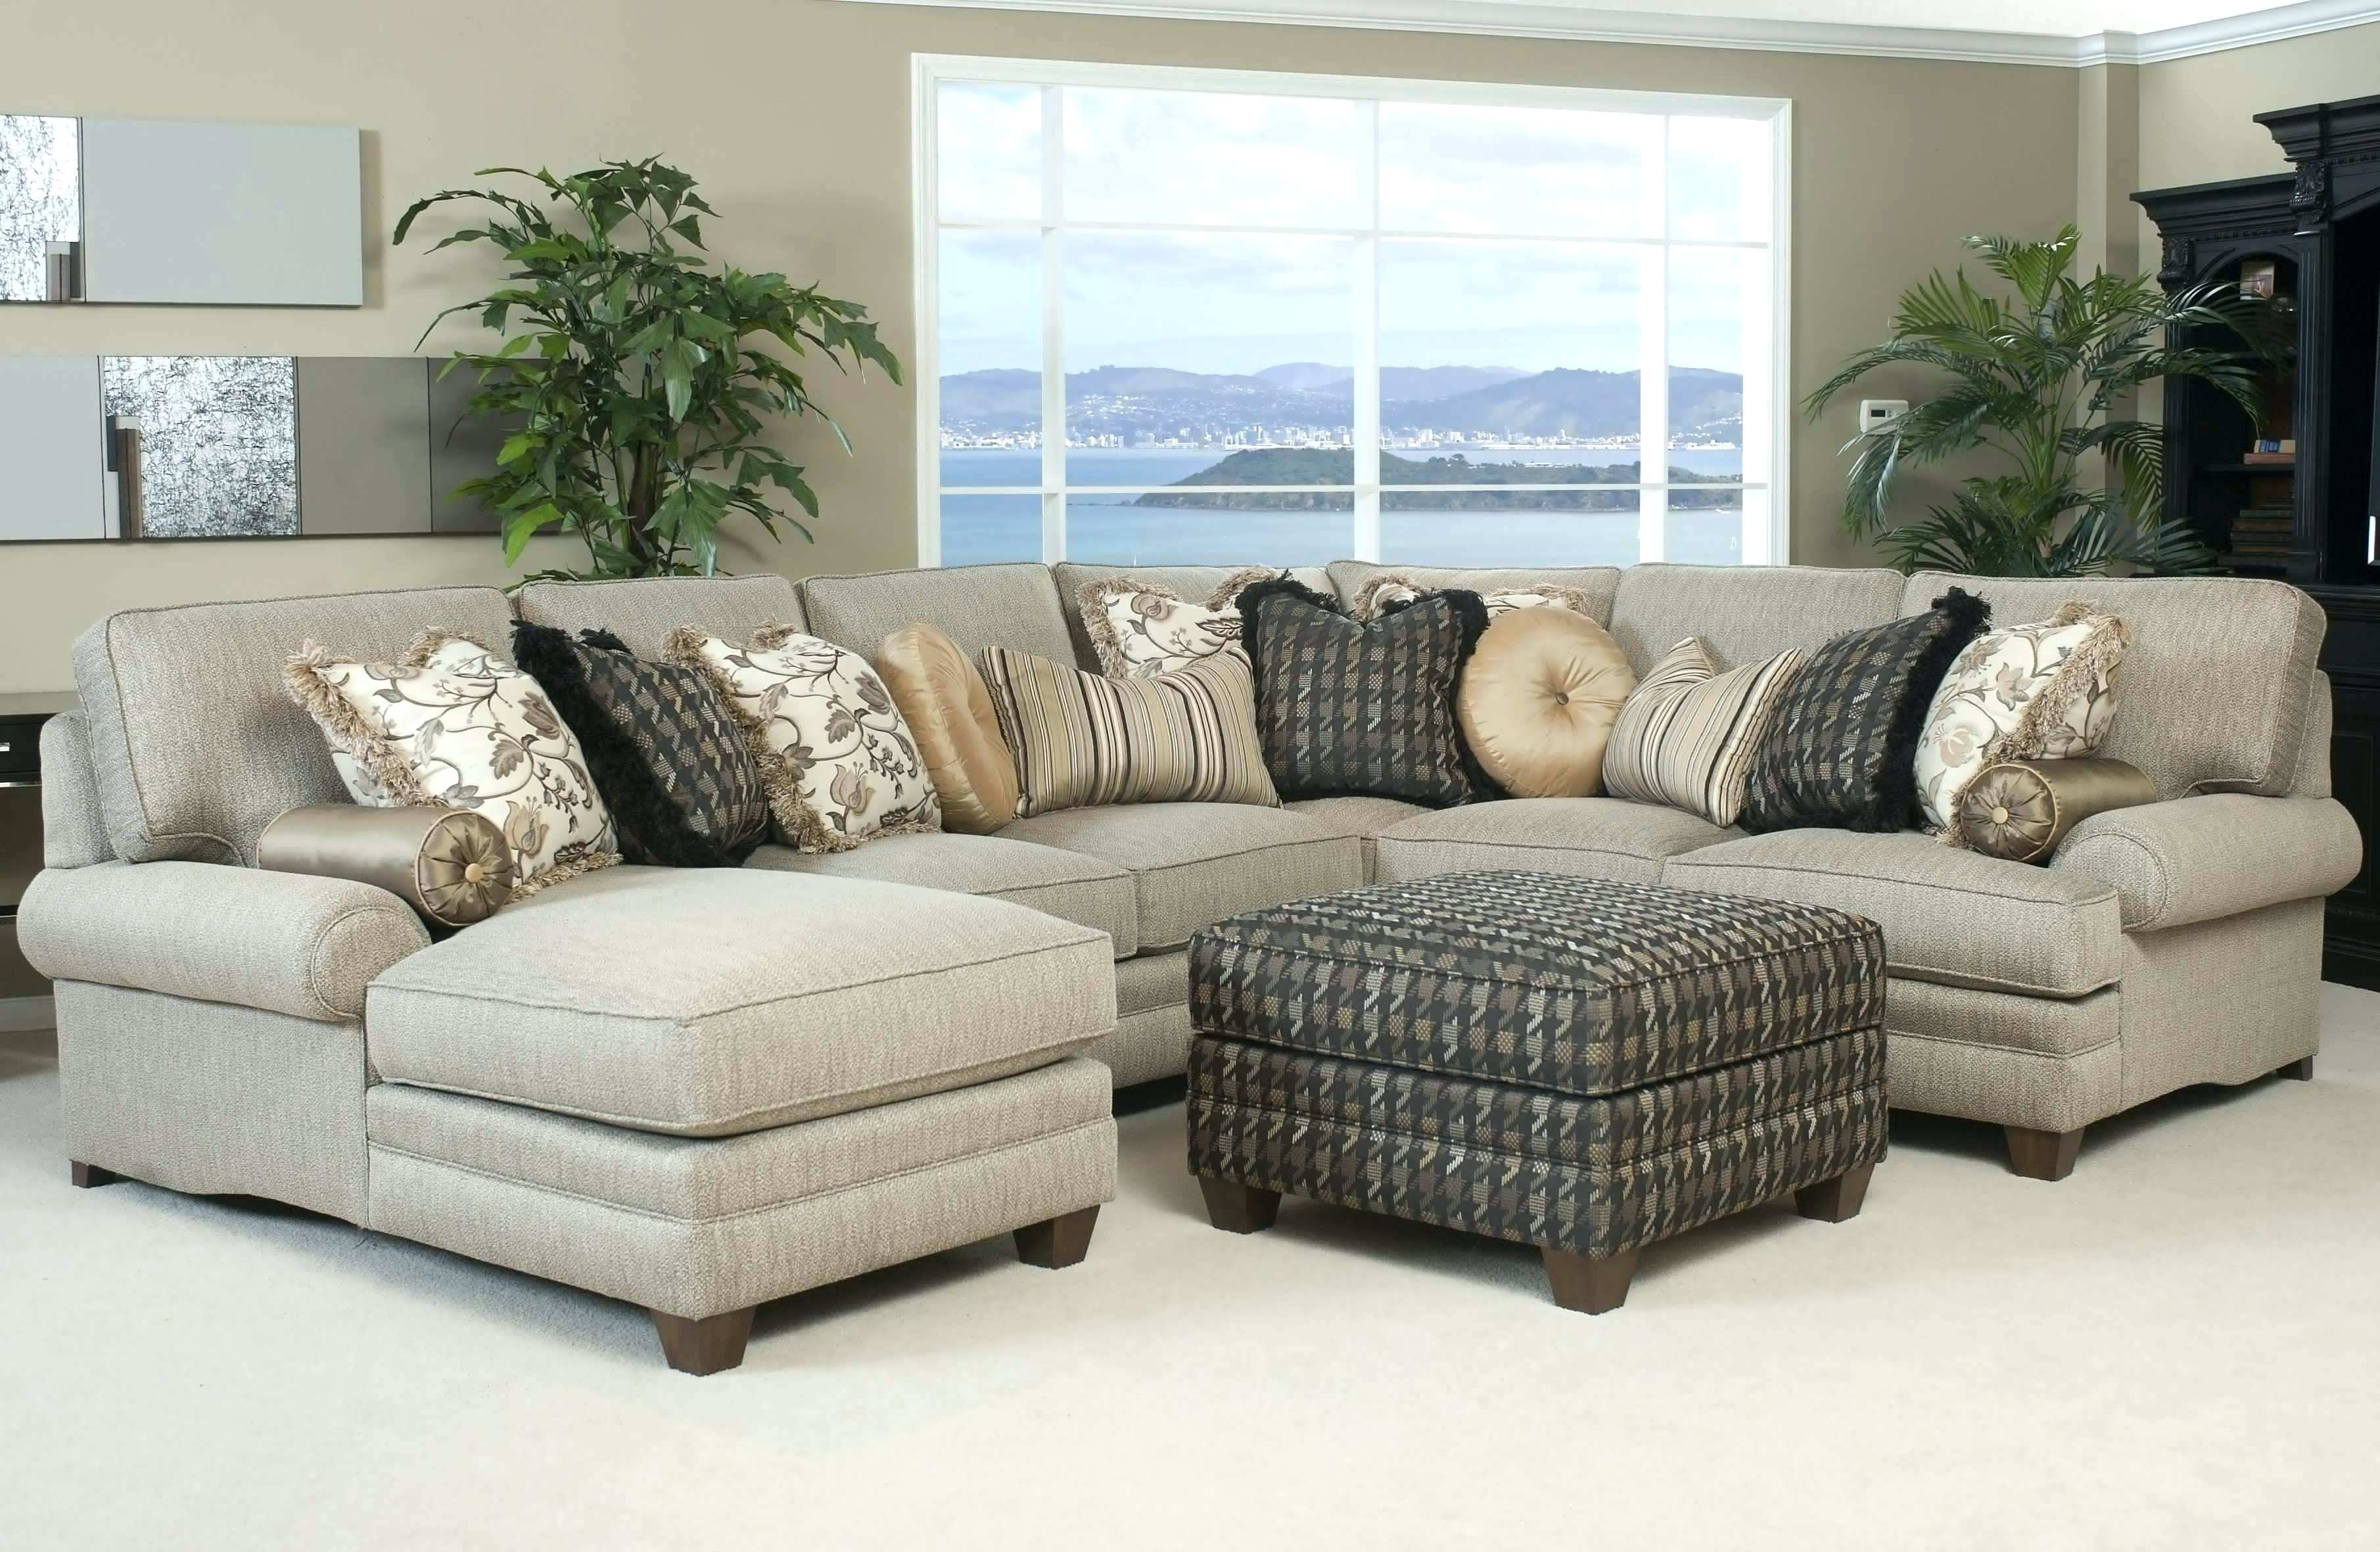 Inspirational Sectional Sofa San Antonio – Buildsimplehome For Sectional Sofas In San Antonio (View 6 of 10)